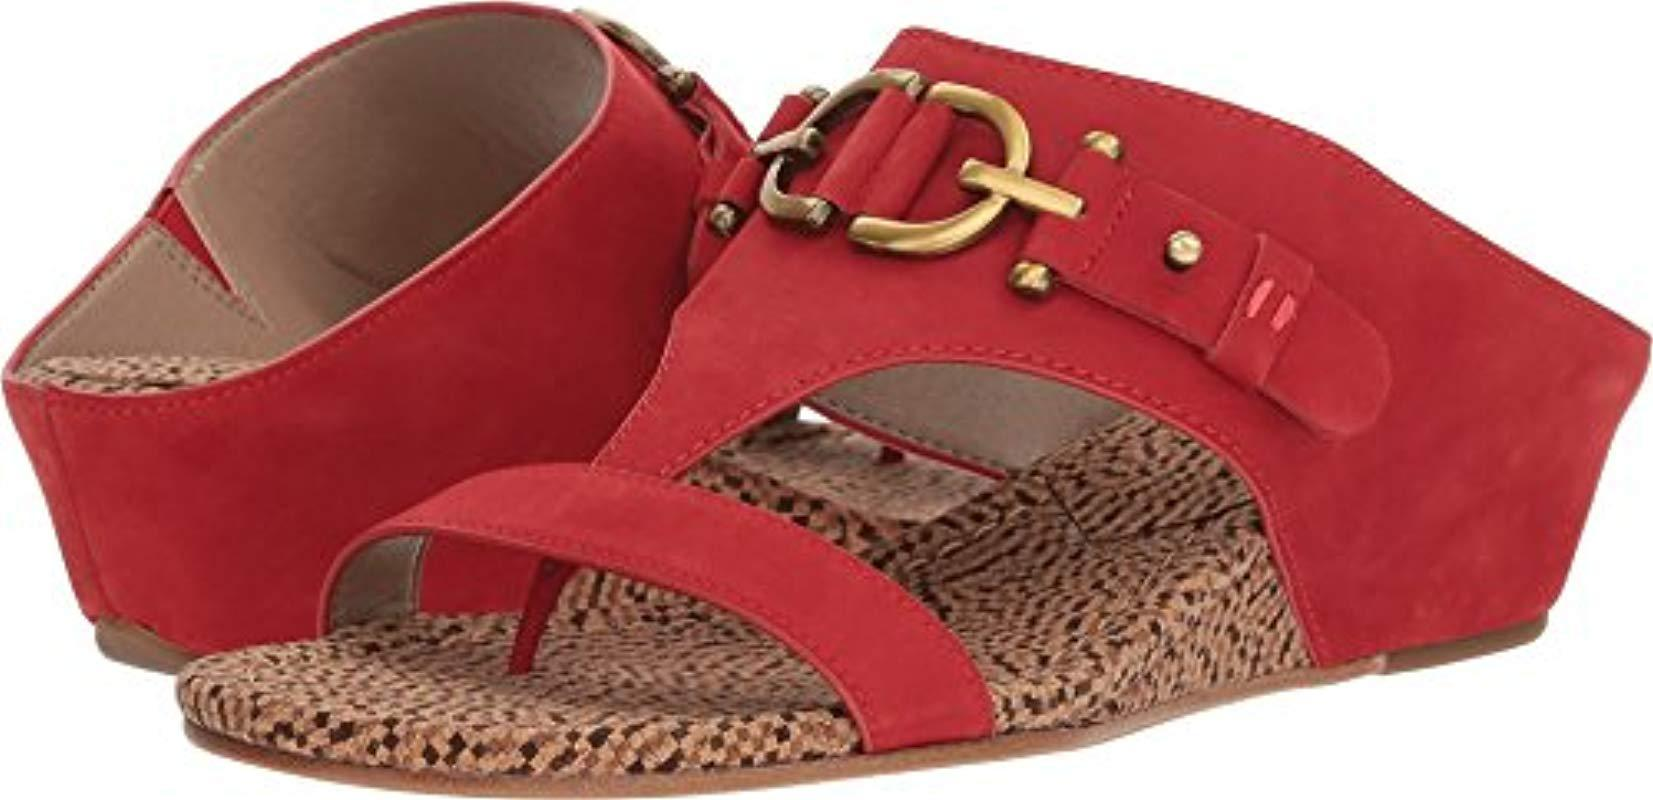 a4d05c1e3d Lyst - Donald J Pliner Dayna Wedge Sandal in Red - Save 32%